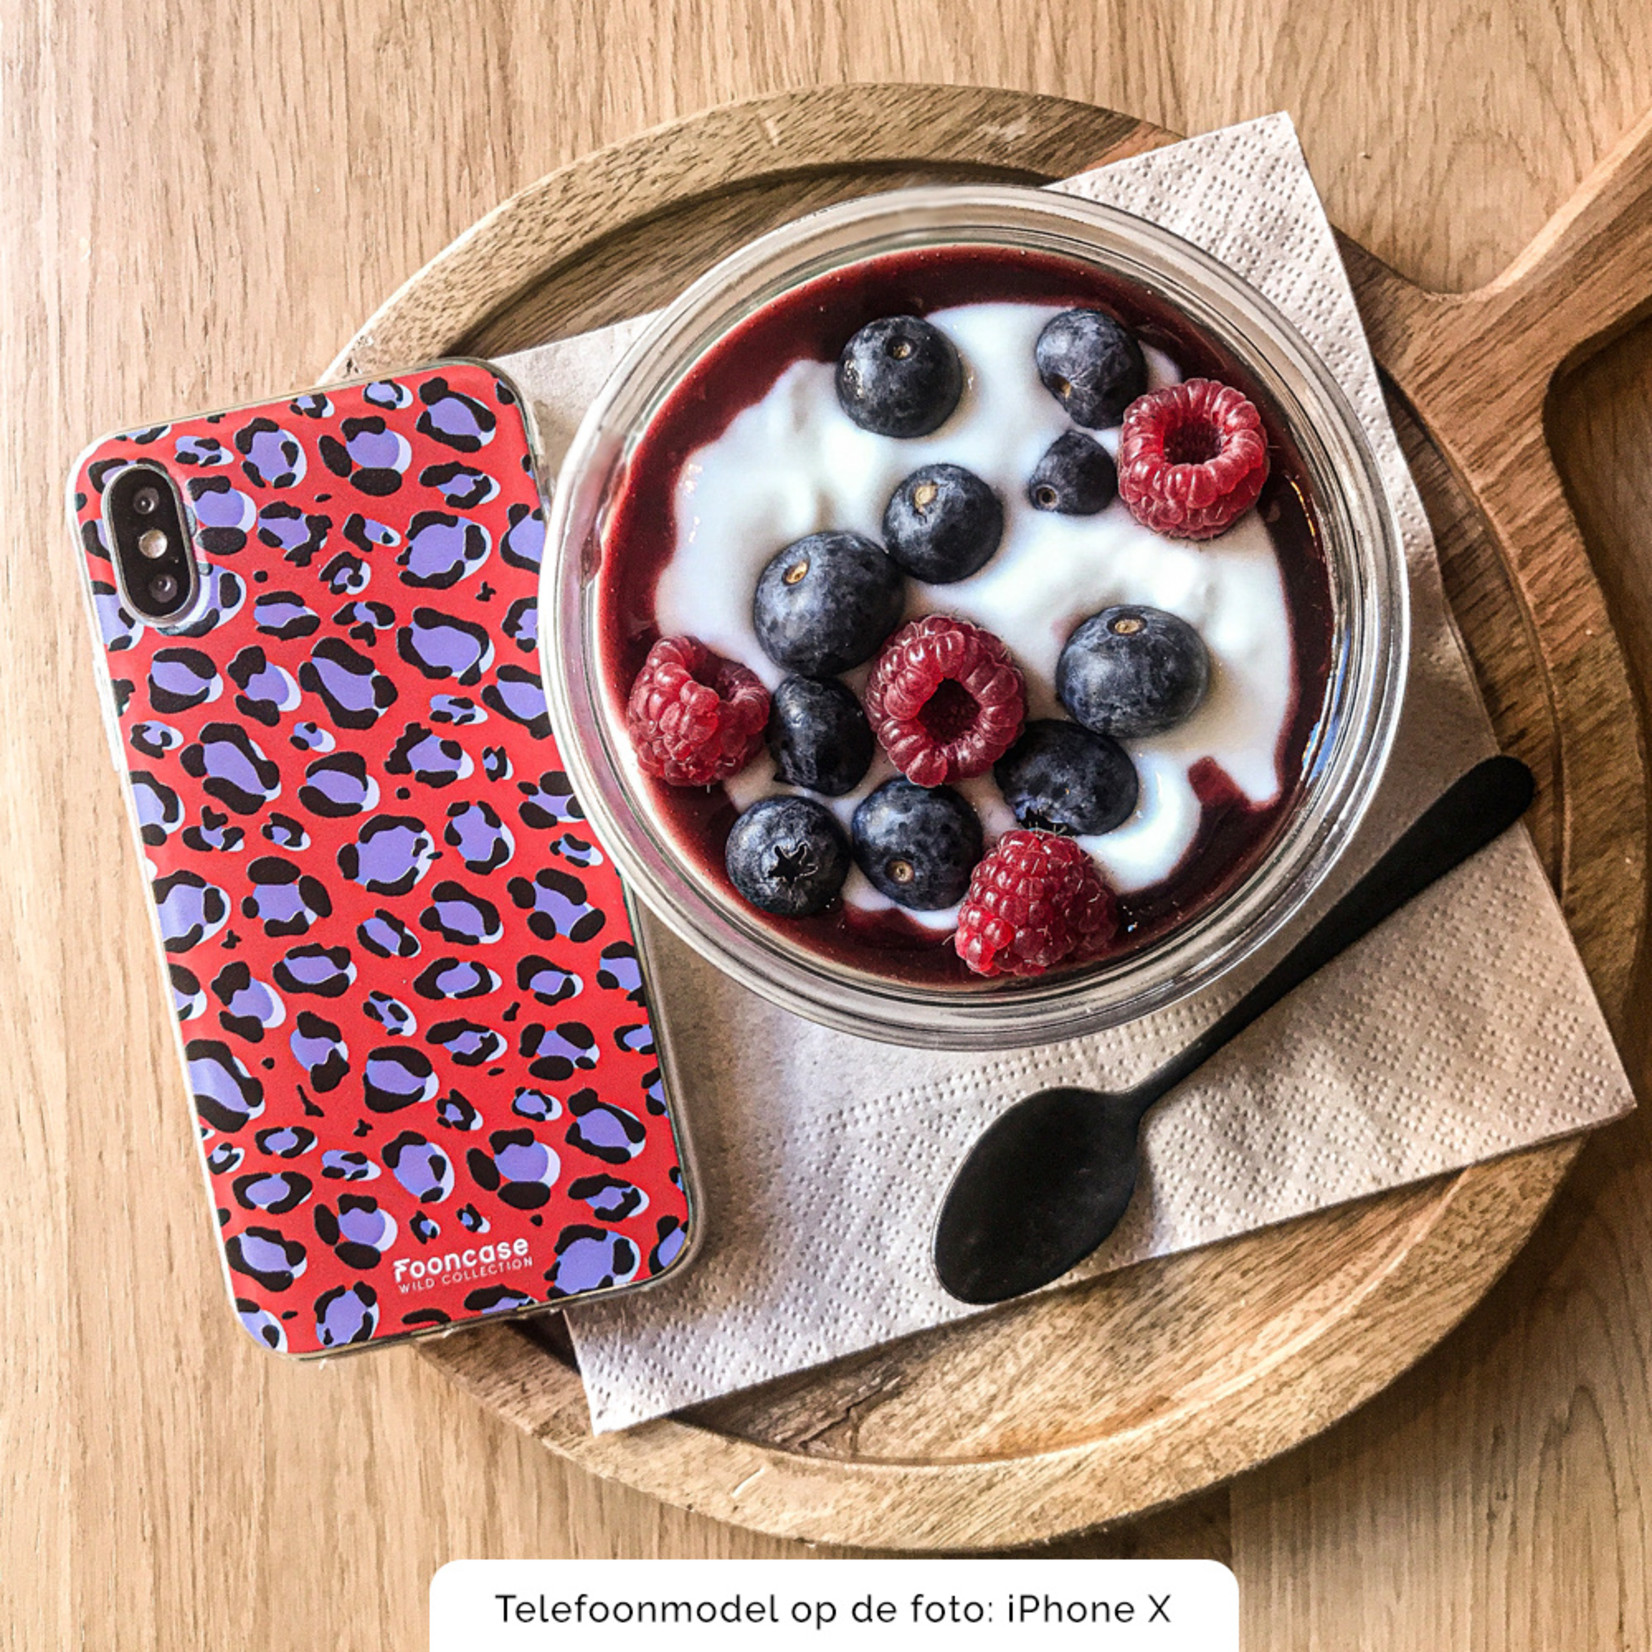 FOONCASE Samsung GalaxyS8 Plus hoesje TPU Soft Case - Back Cover - WILD COLLECTION / Luipaard / Leopard print / Rood